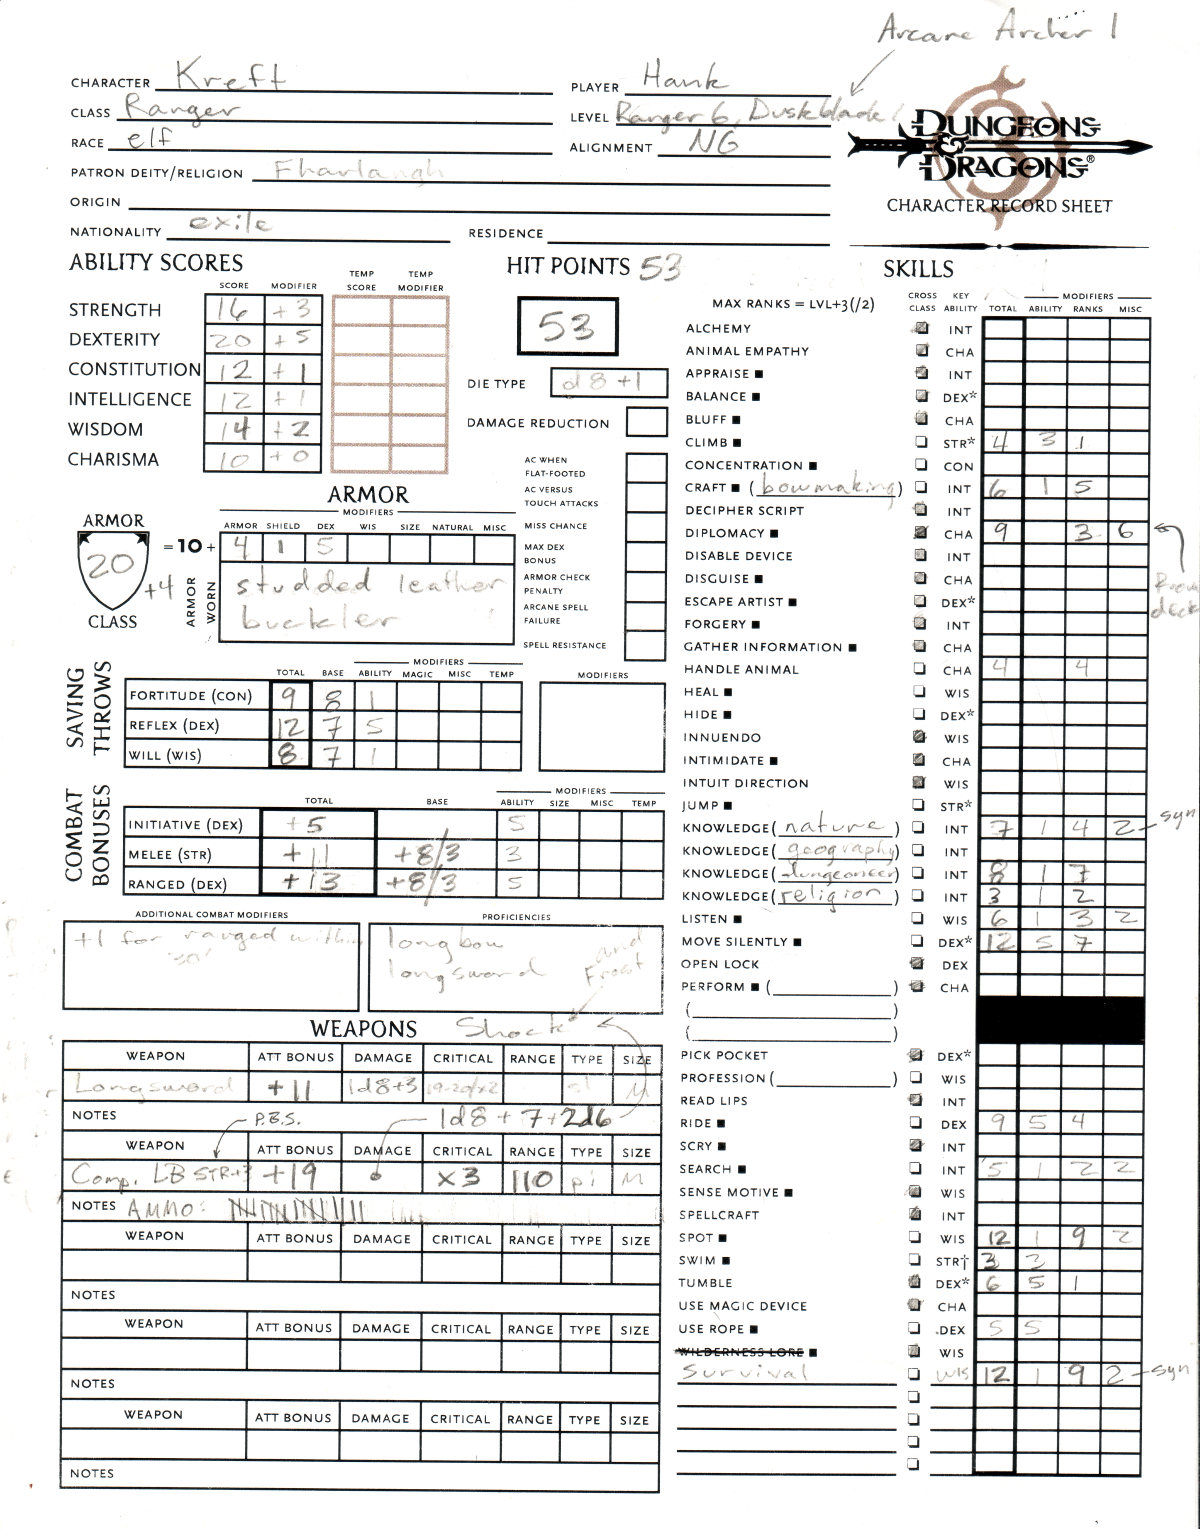 Monk Character Sheet on viewtopic